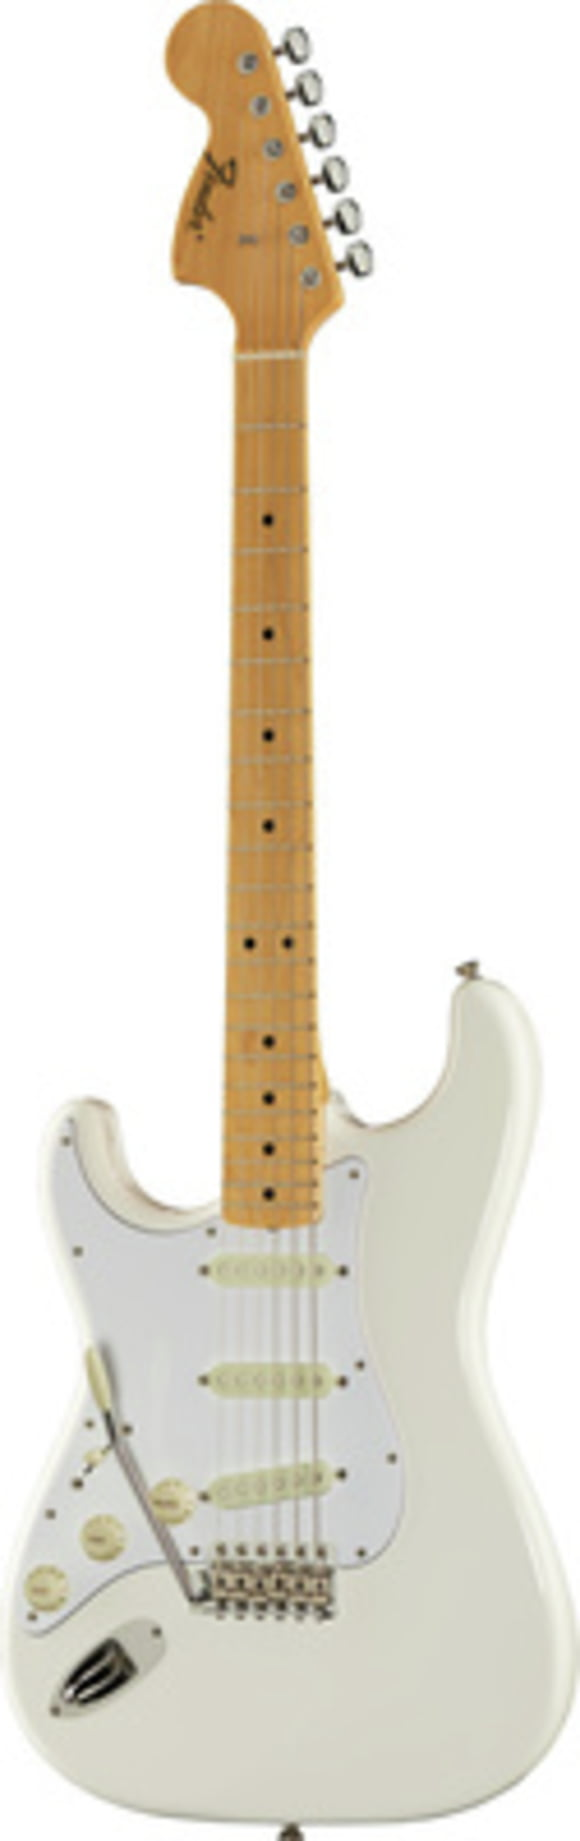 Traditional 68s Strat White LH Fender